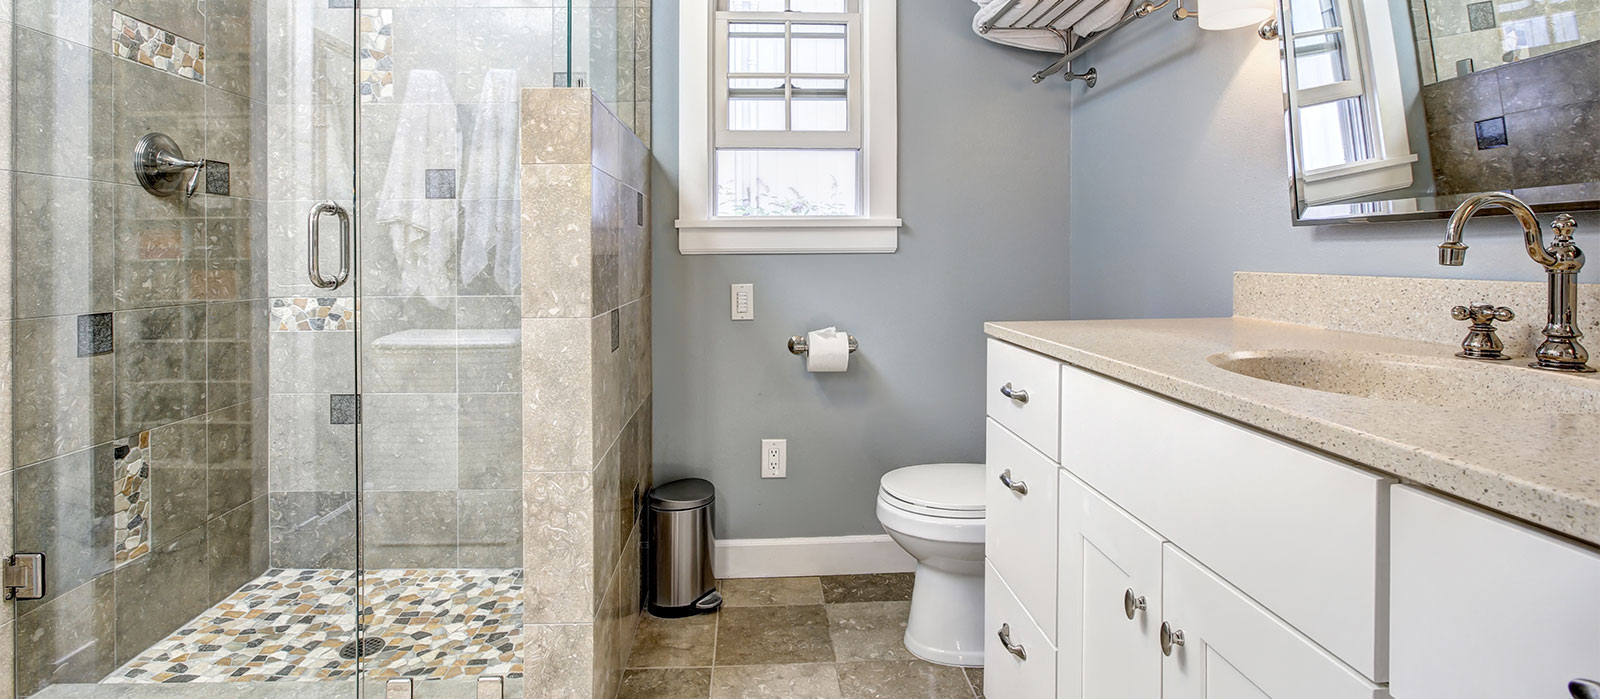 Plumbing Services Licensed Plumber In St Charles MO Arch Plumbing - Bathroom remodeling st charles mo